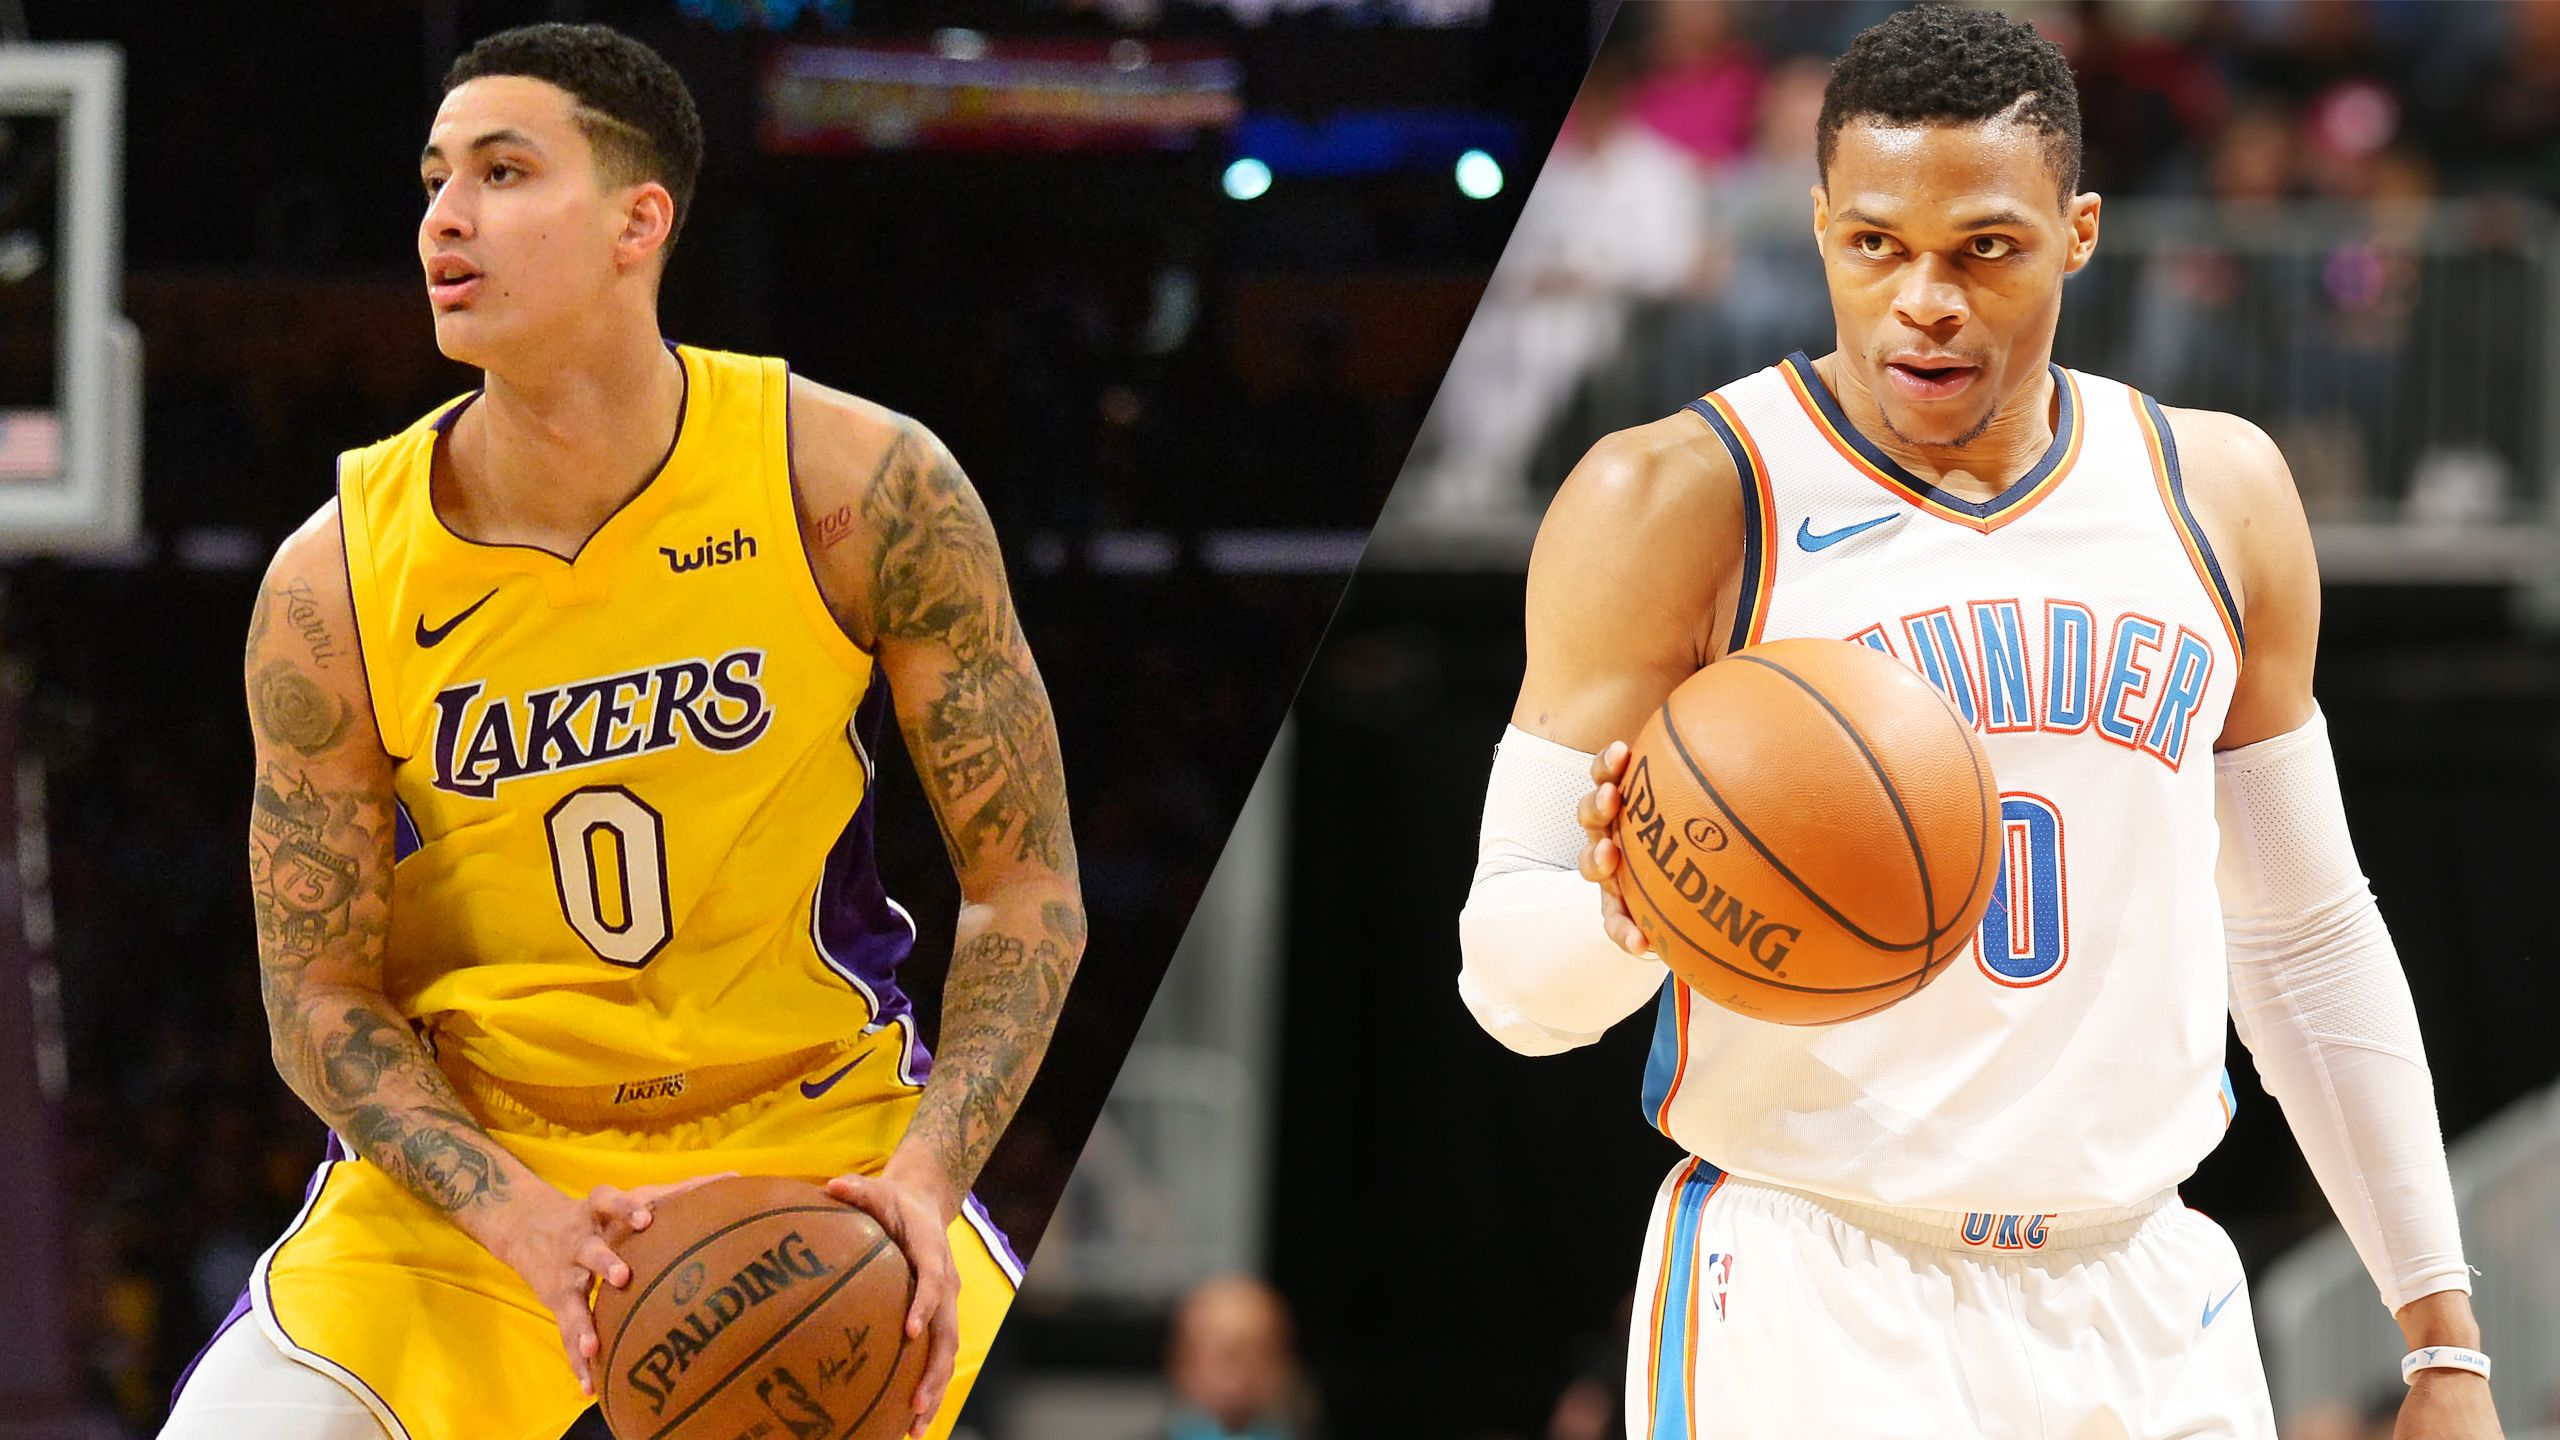 Los Angeles Lakers vs. Oklahoma City Thunder (re-air)